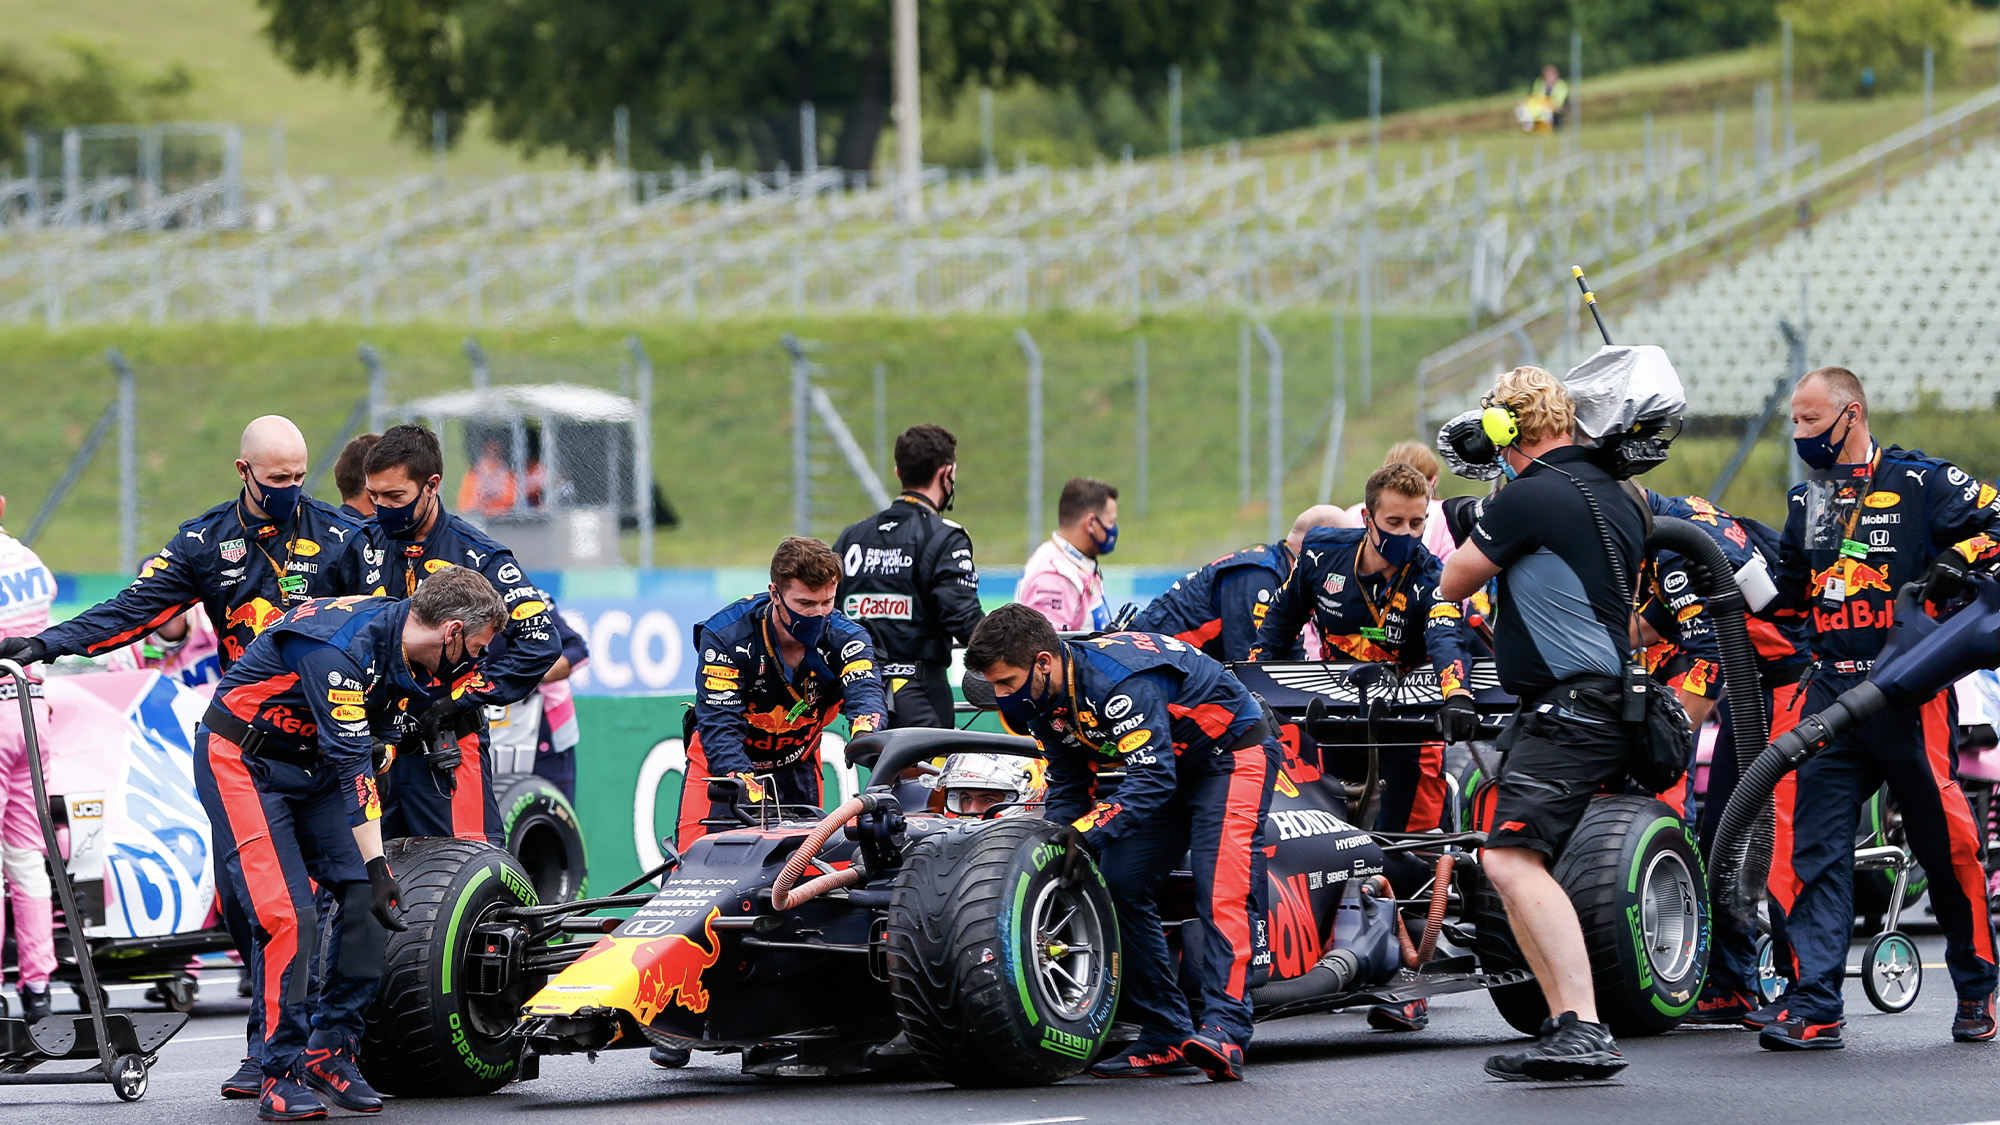 Max Verstappen arrives to the grid of the 2020 f1 Hungarian Grand Prix with a damaged nose after crashing